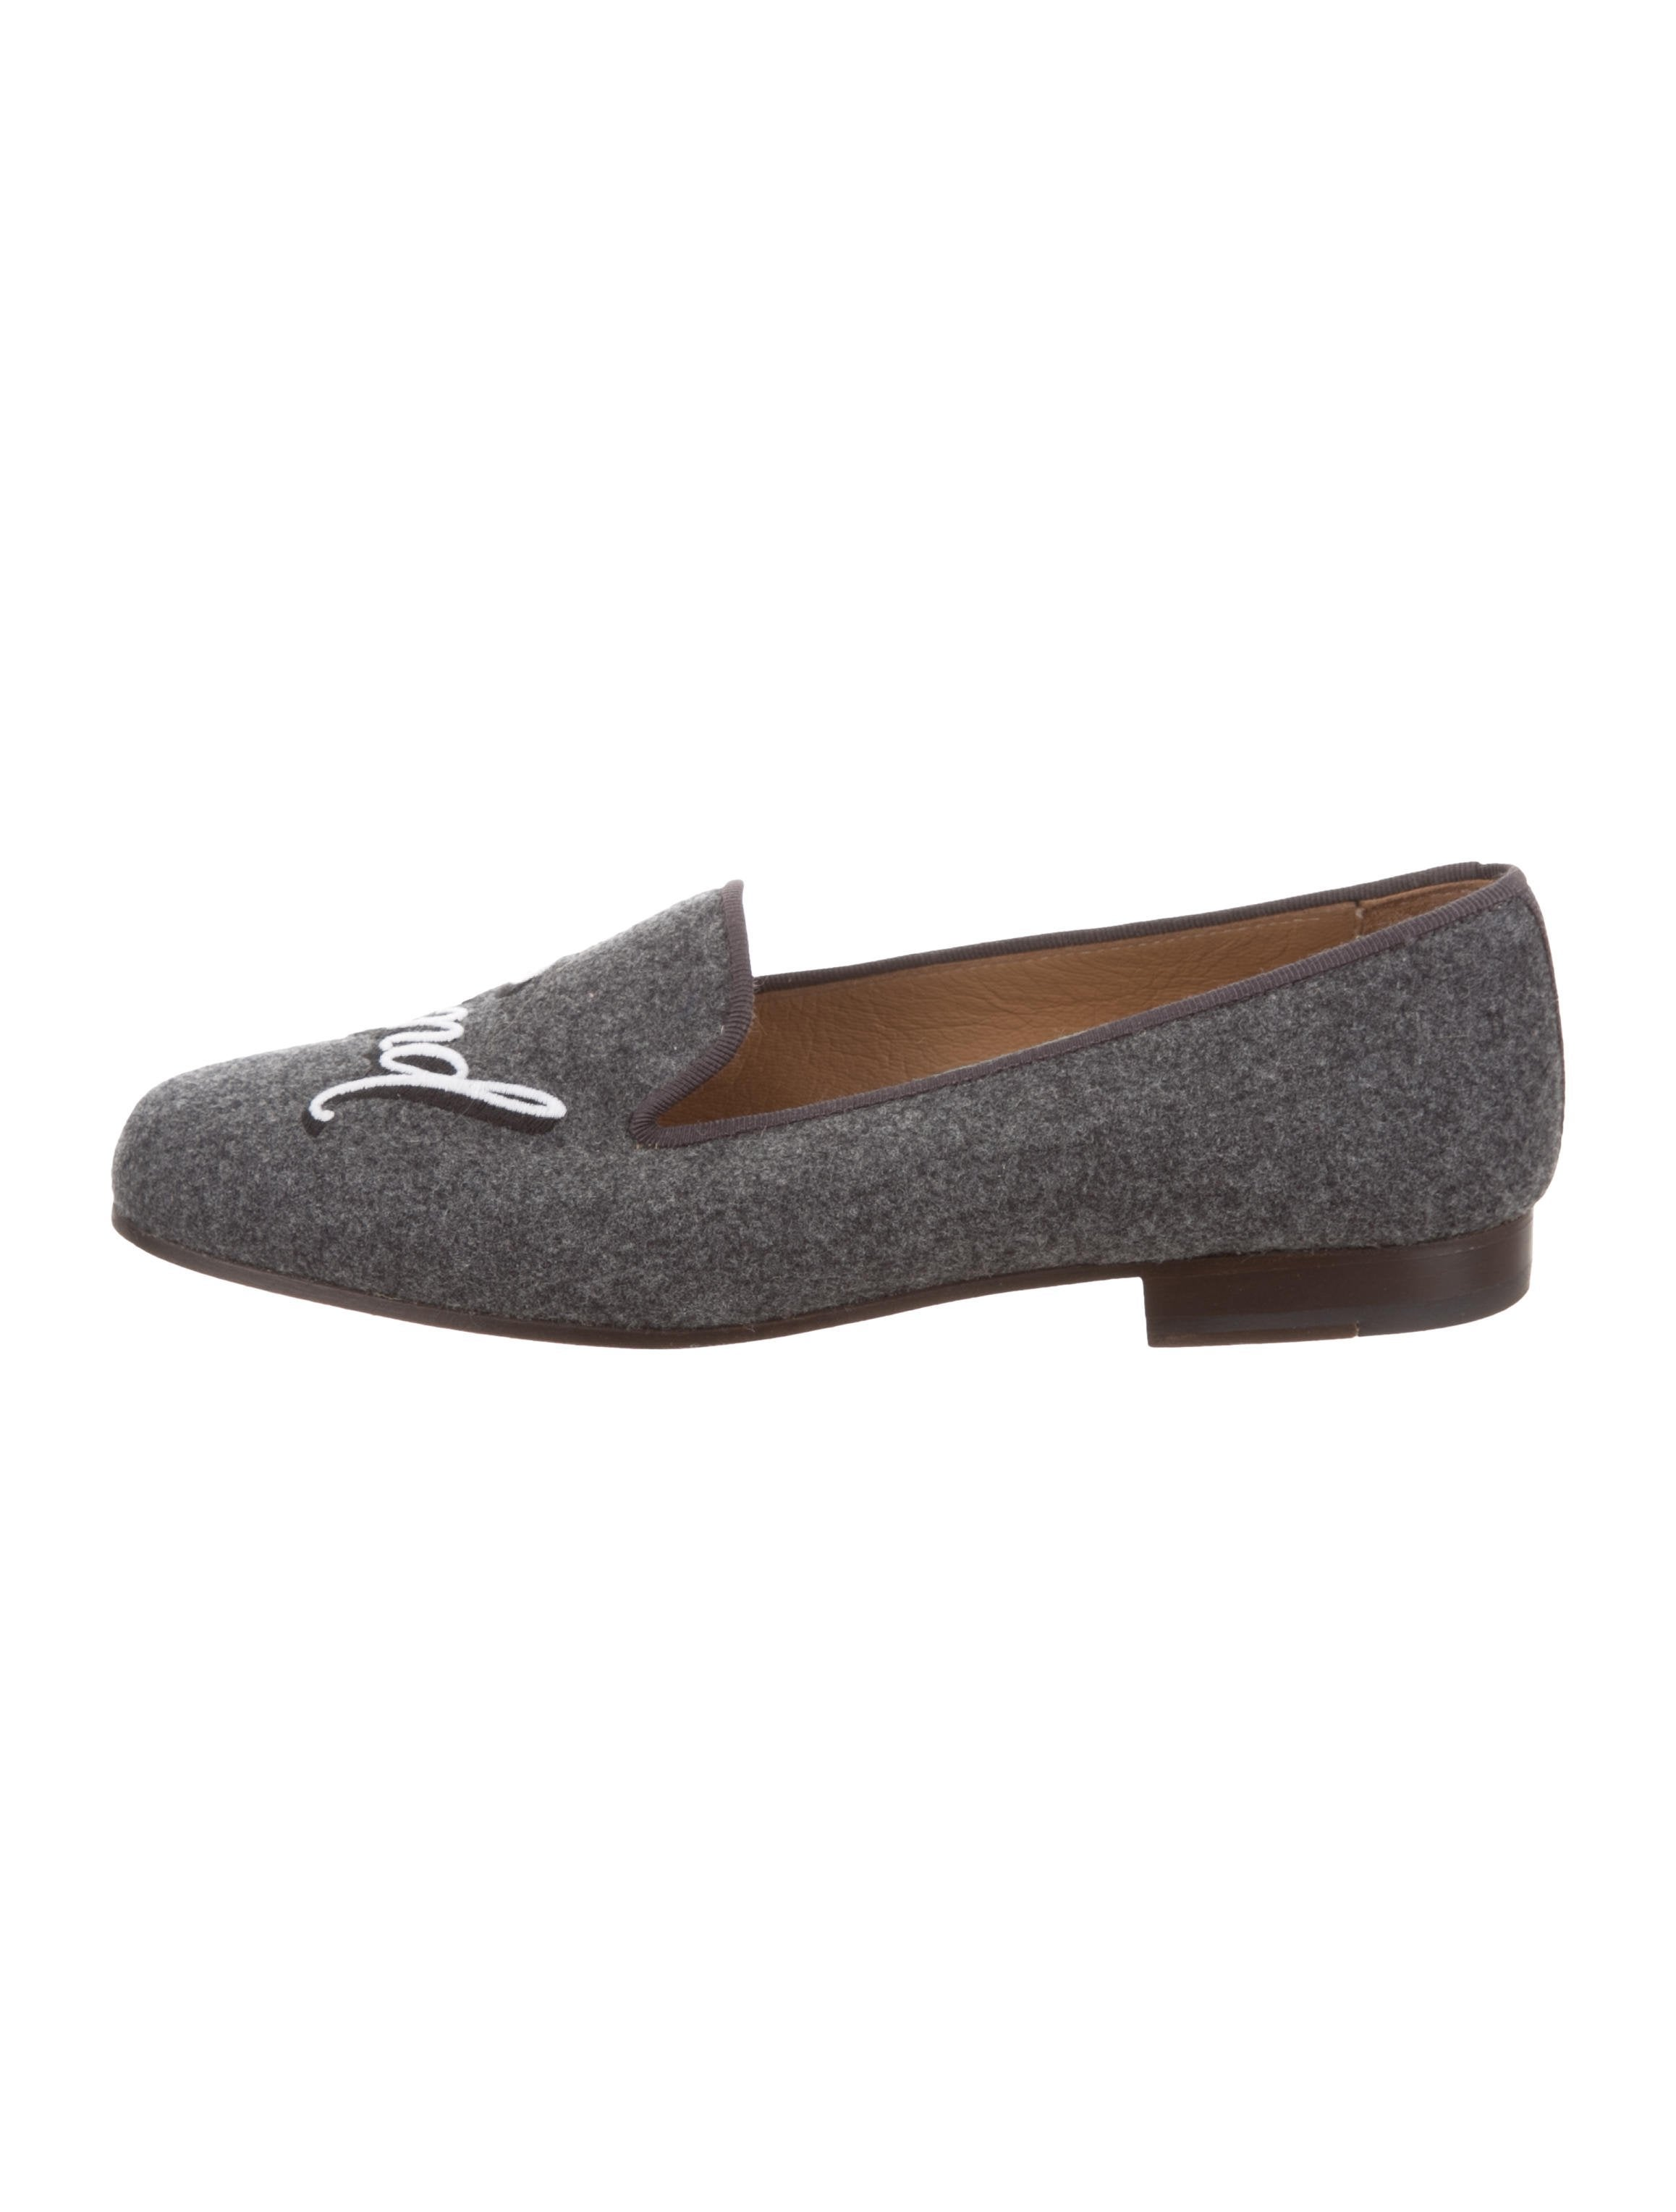 Stubbs & Wootton Felt Round-Toe Loafers new arrival websites cheap online free shipping under $60 xx1fwr